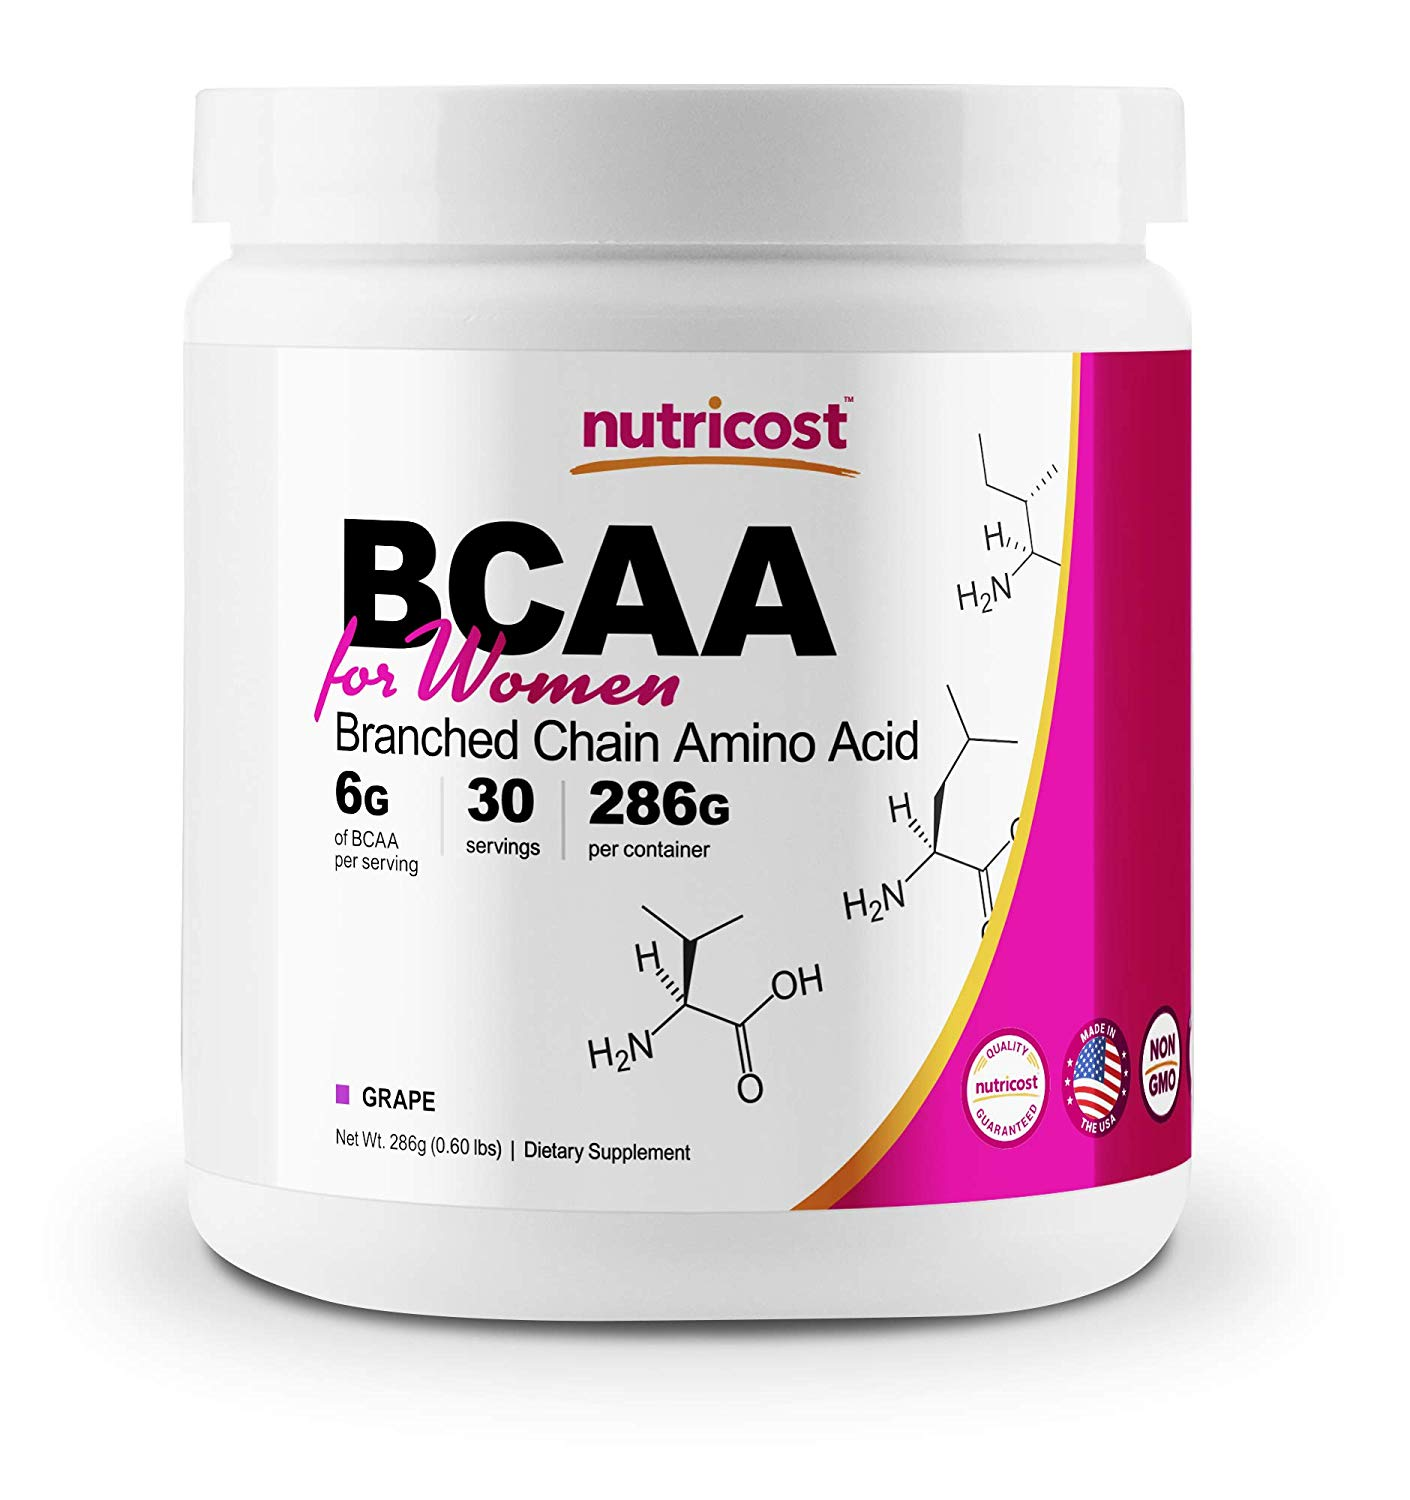 Nutricost BCAA for Women